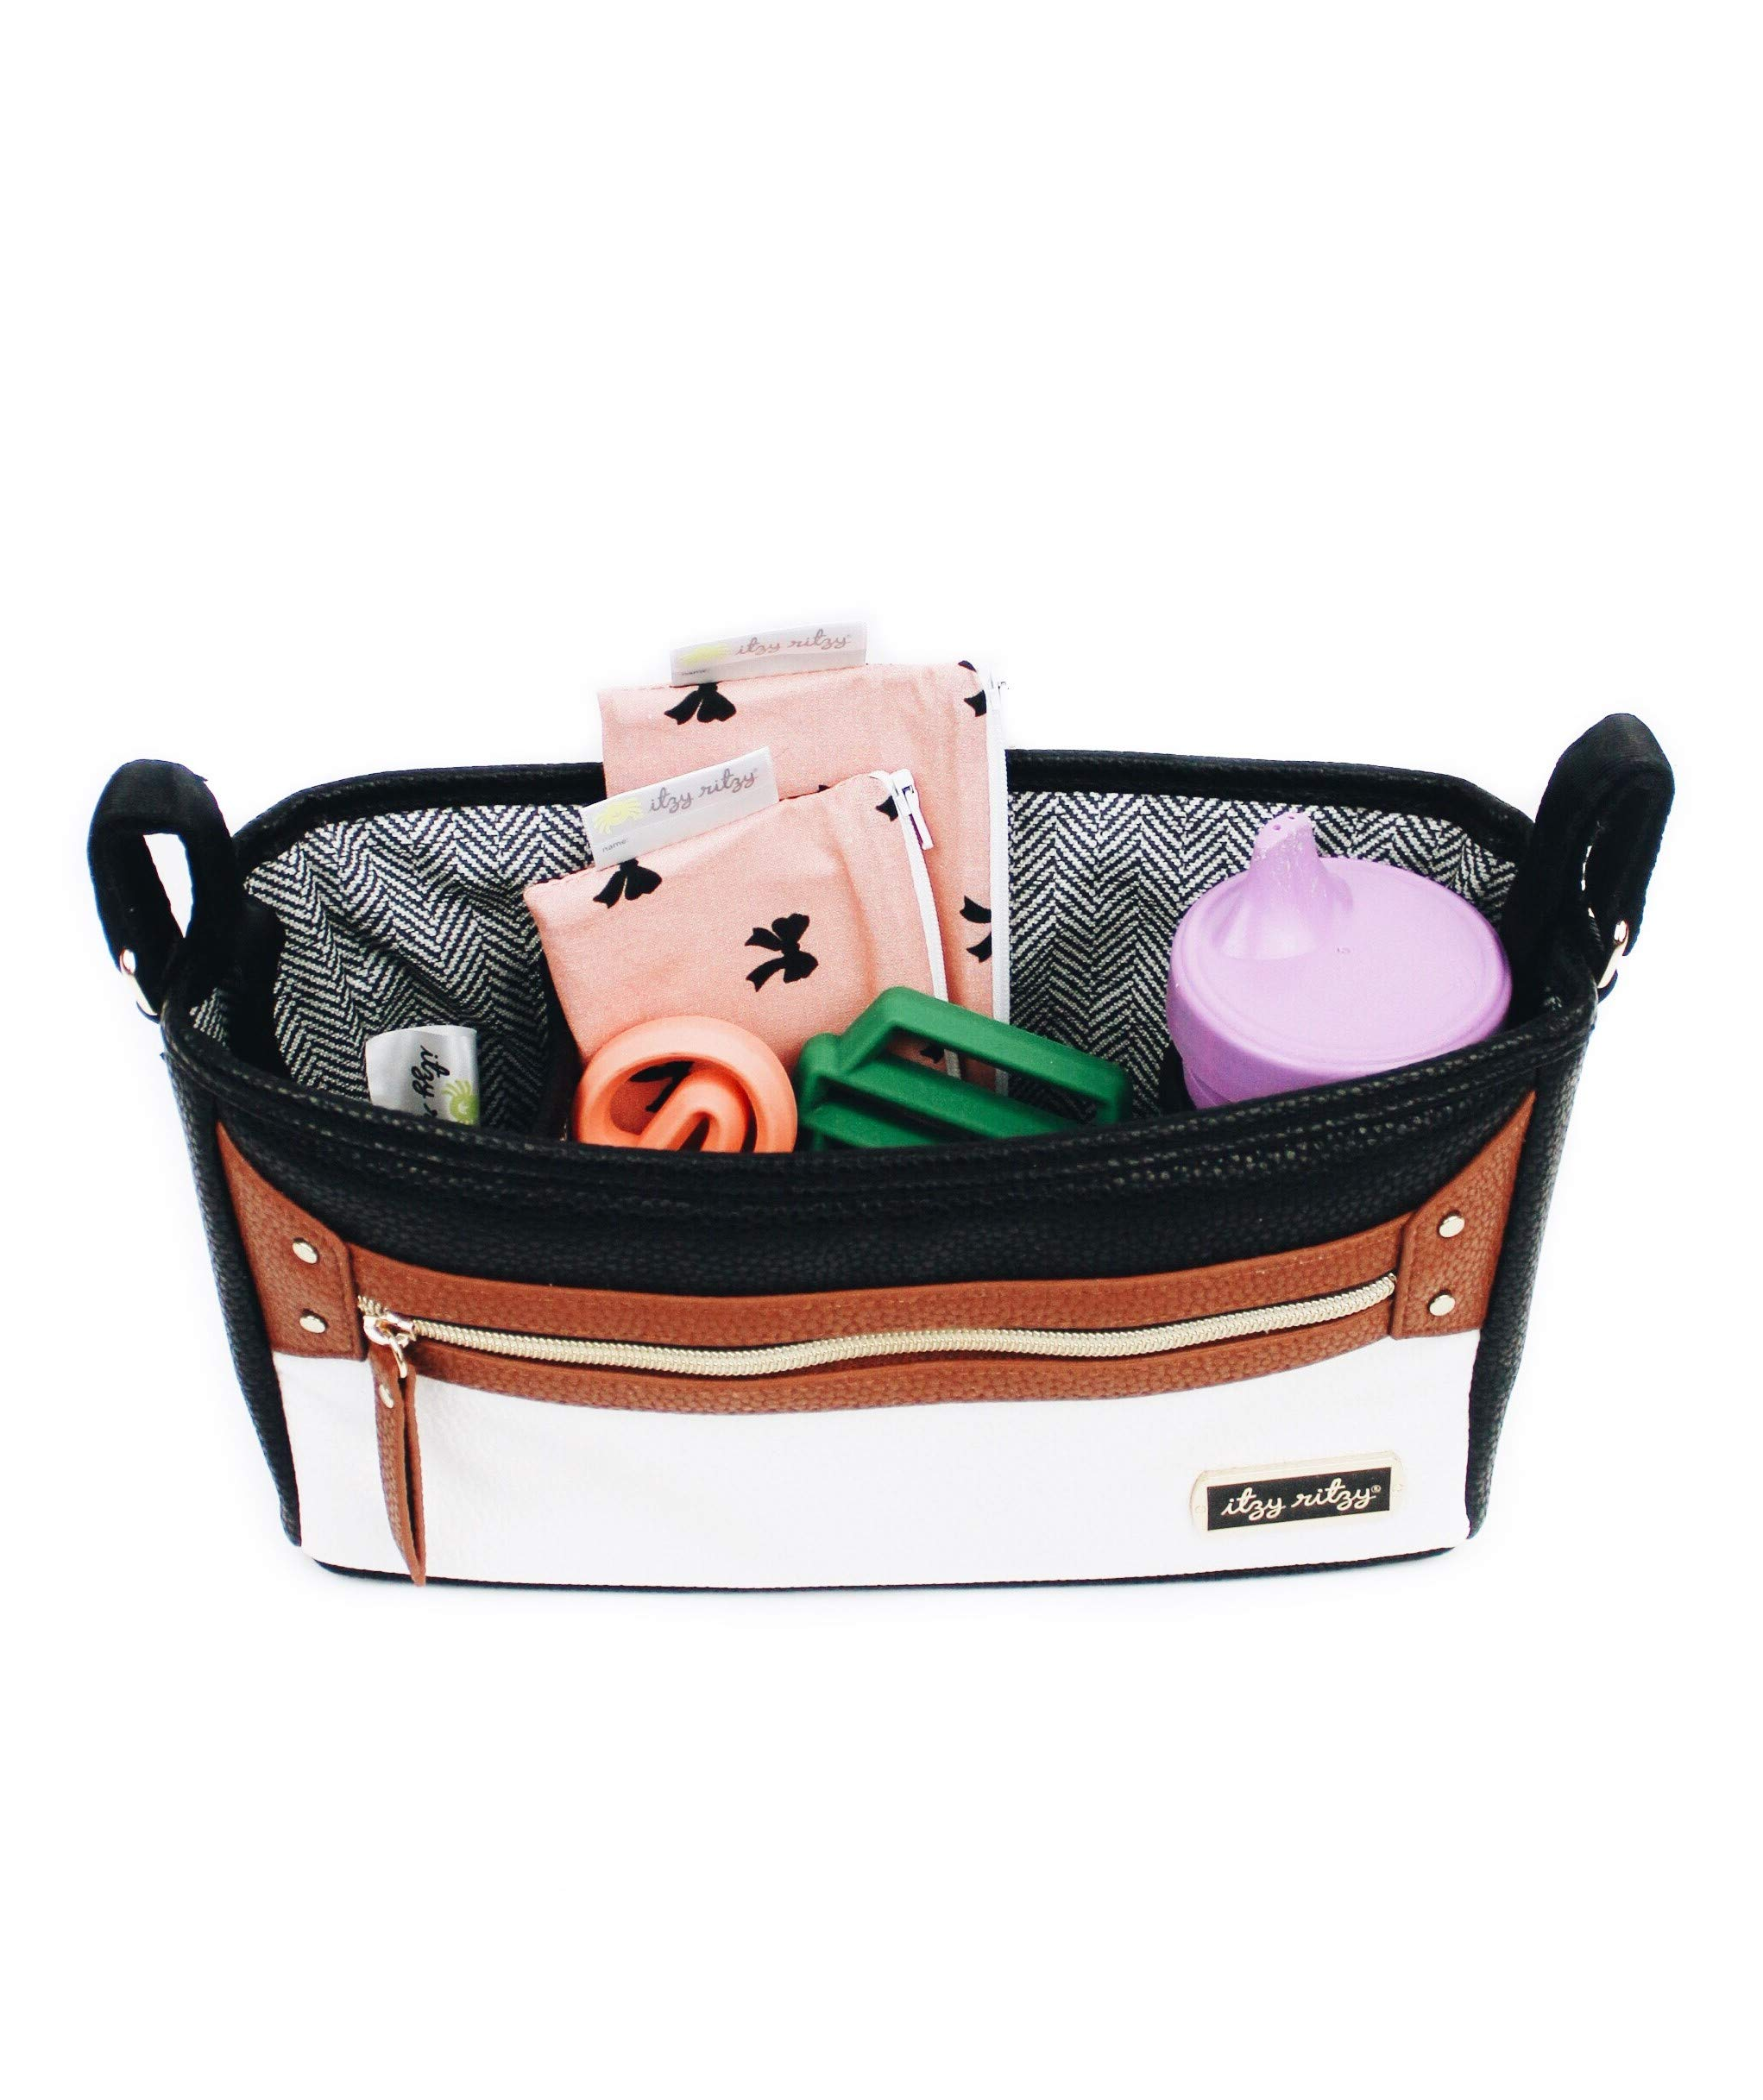 Itzy Ritzy Adjustable Stroller Caddy - Stroller Organizer Featuring Two Built-in Pockets, Front Zippered Pocket and Adjustable Straps to Fit Nearly Any Stroller, Coffee and Cream by Itzy Ritzy (Image #5)